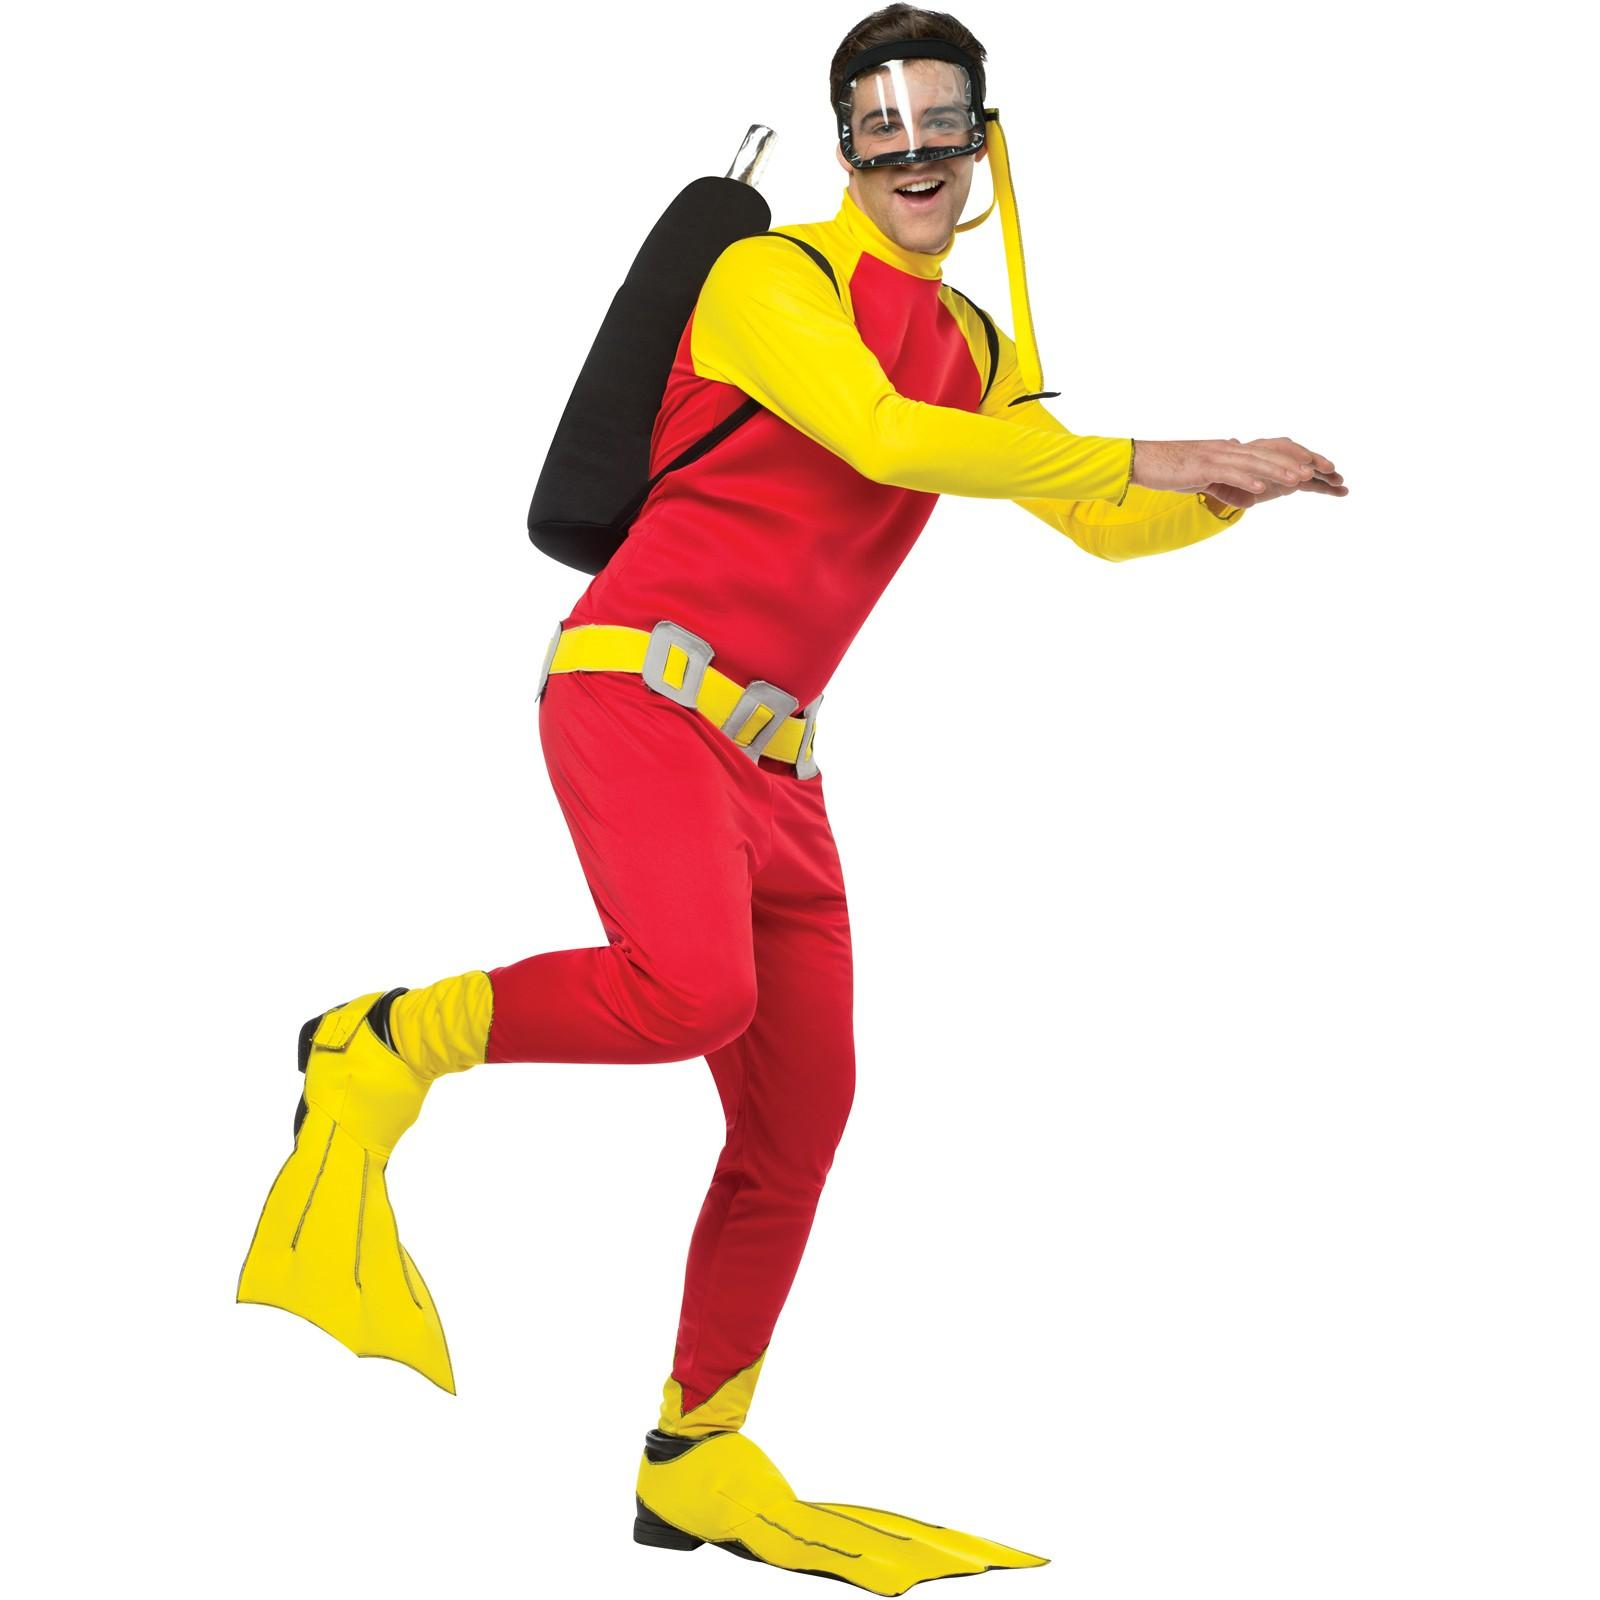 deep-sea-adult-scuba-diver-costume-bc-806388